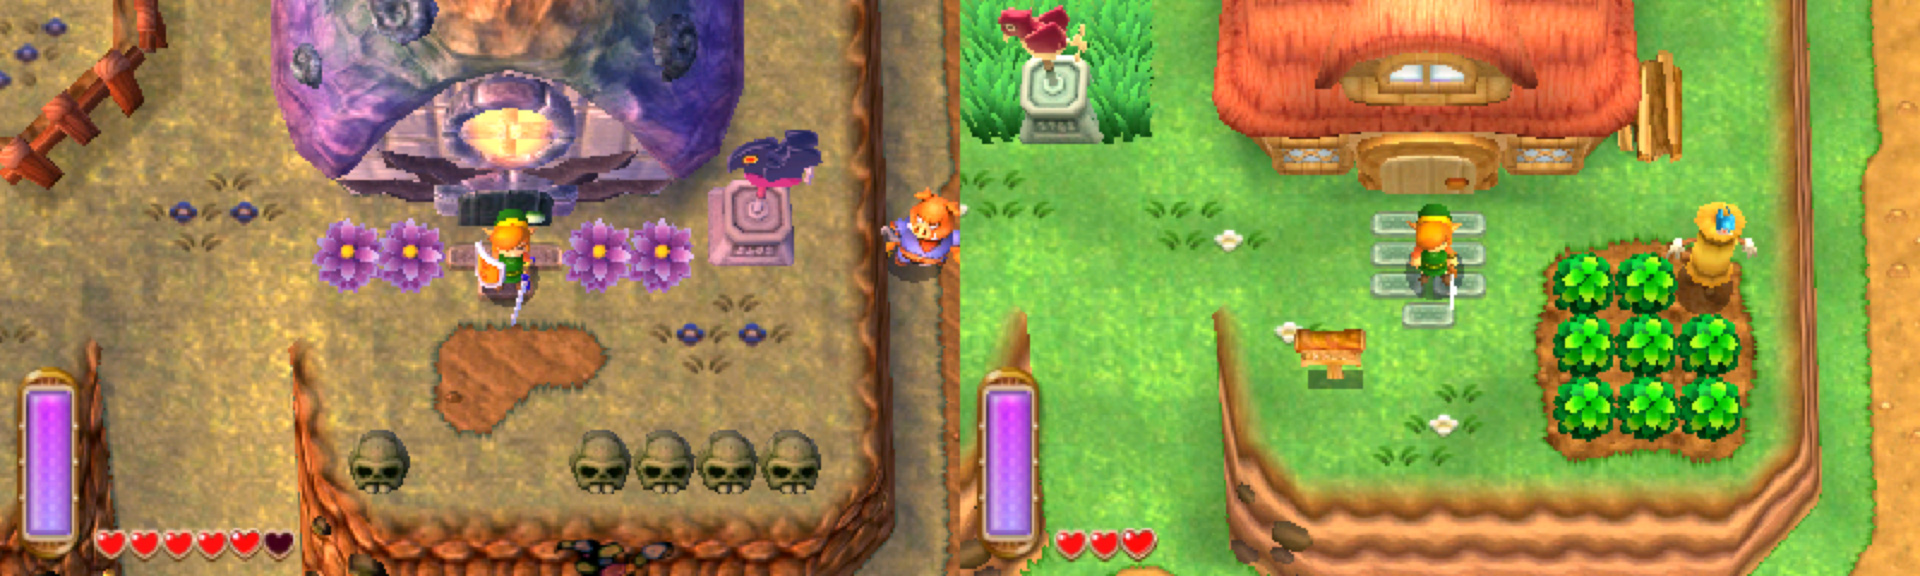 The Legend of Zelda: A Link Between Worlds review: as a ...